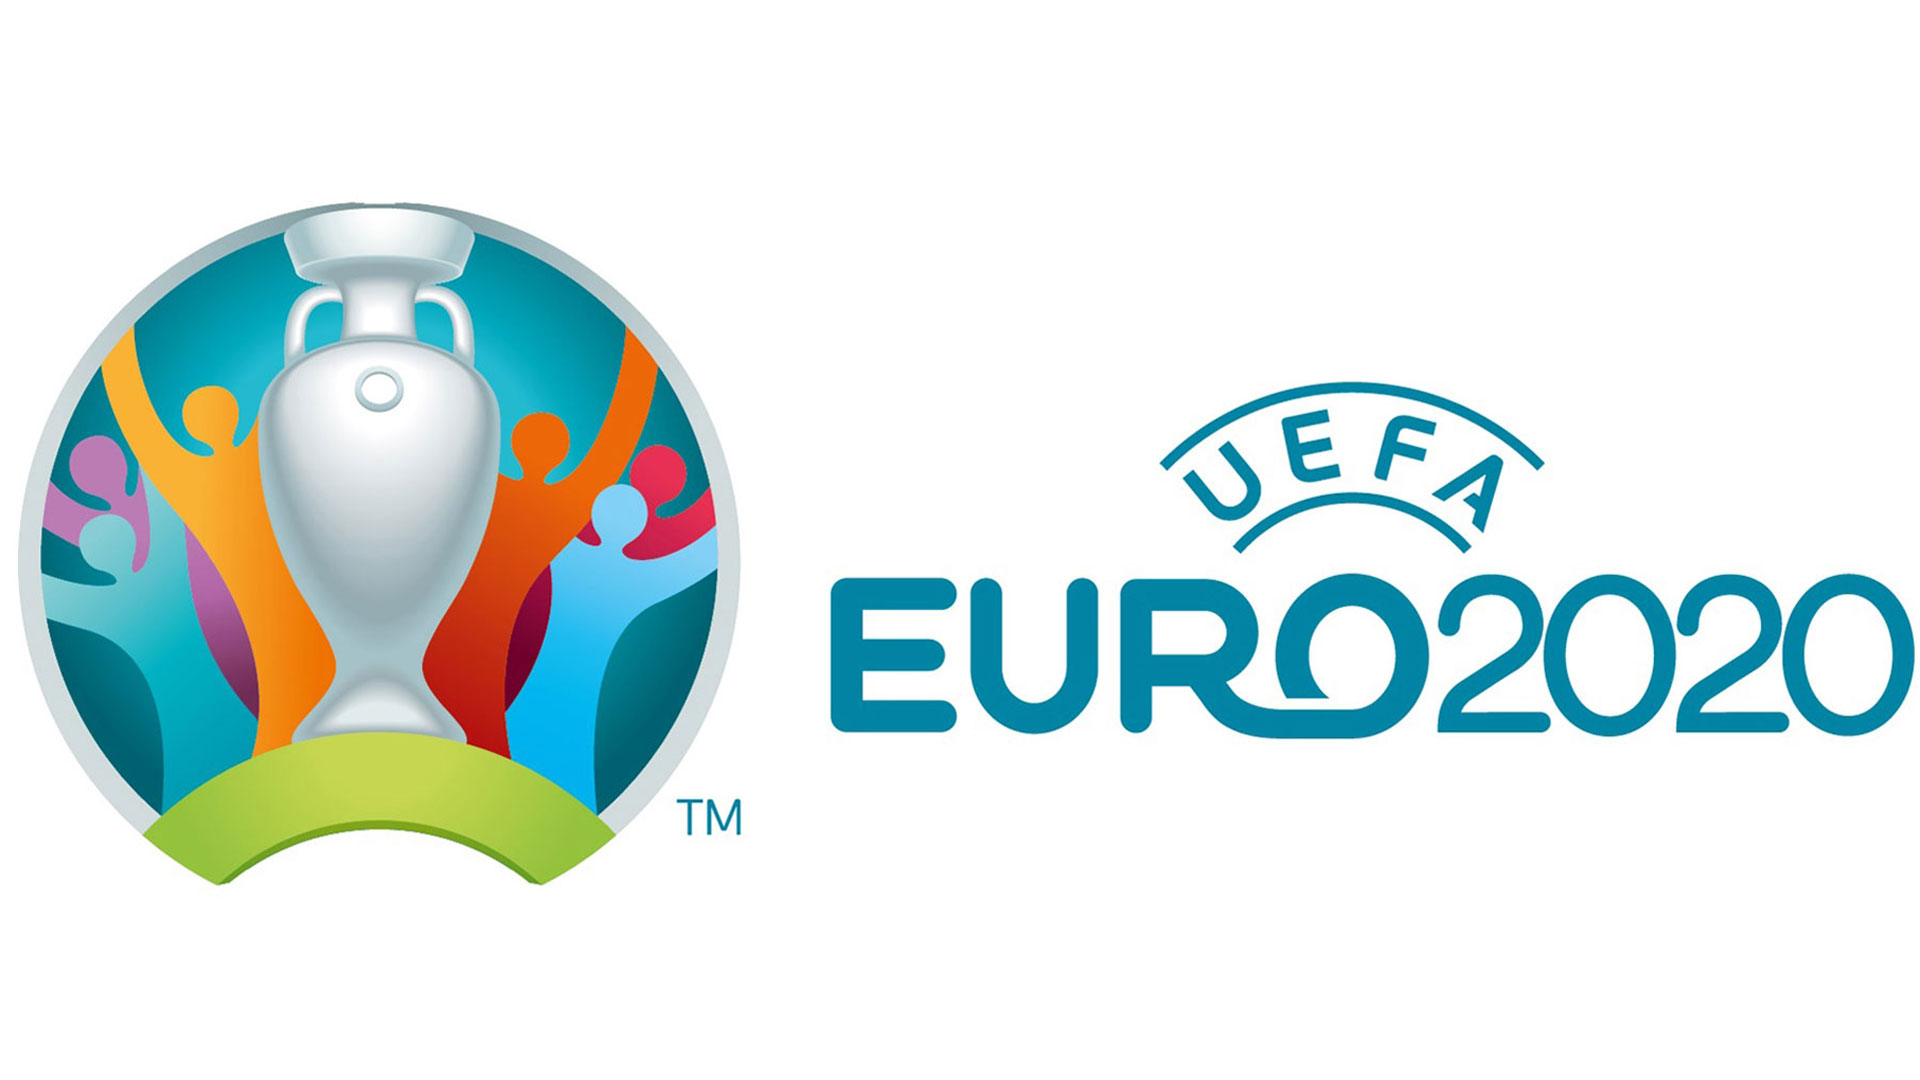 Where and how to watch Euro 2020 matches